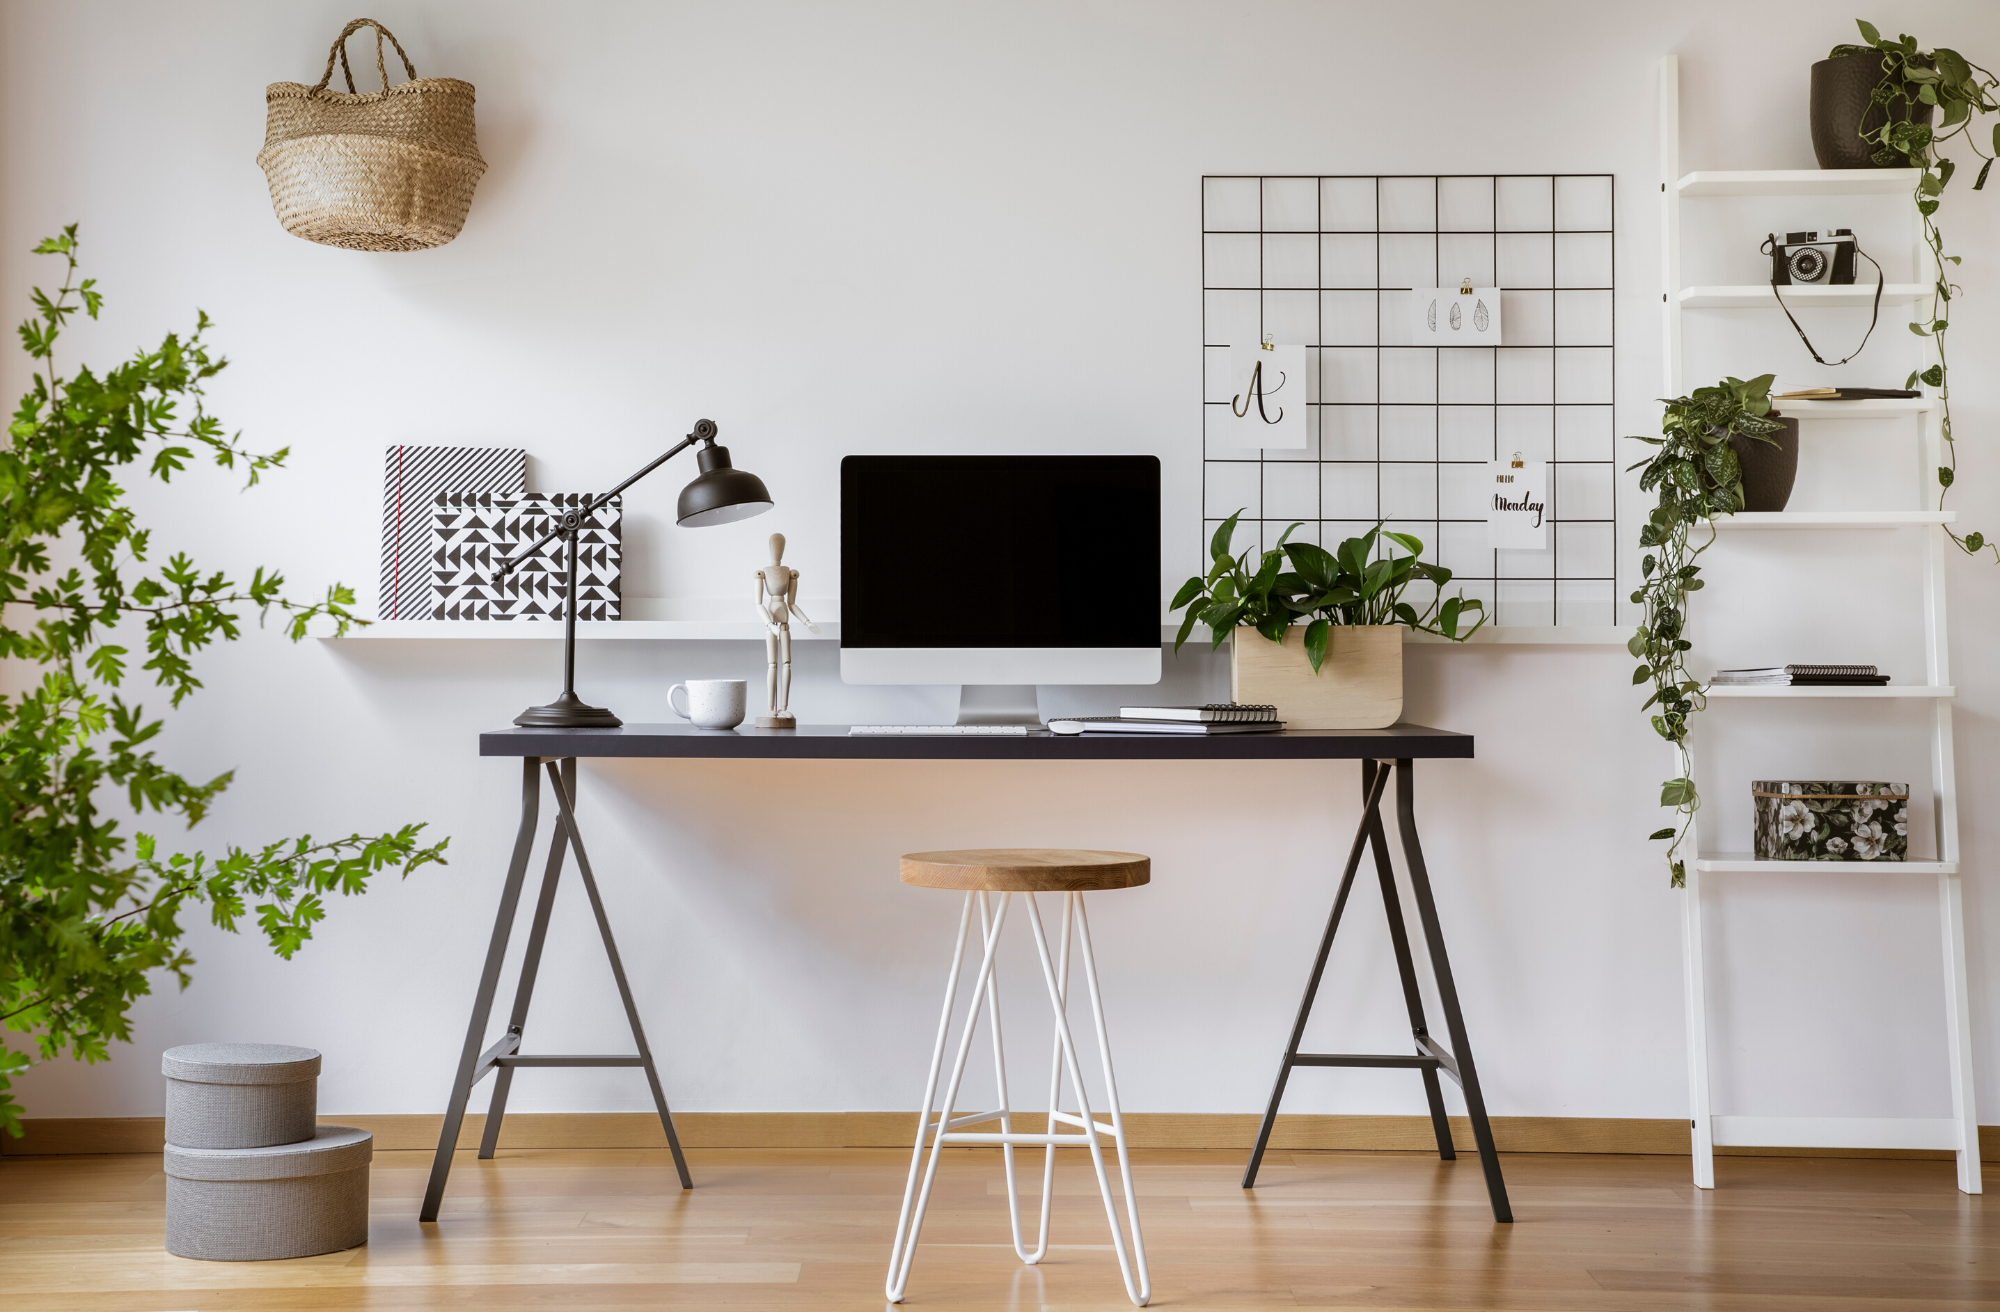 5 Ideas for Home Office Design